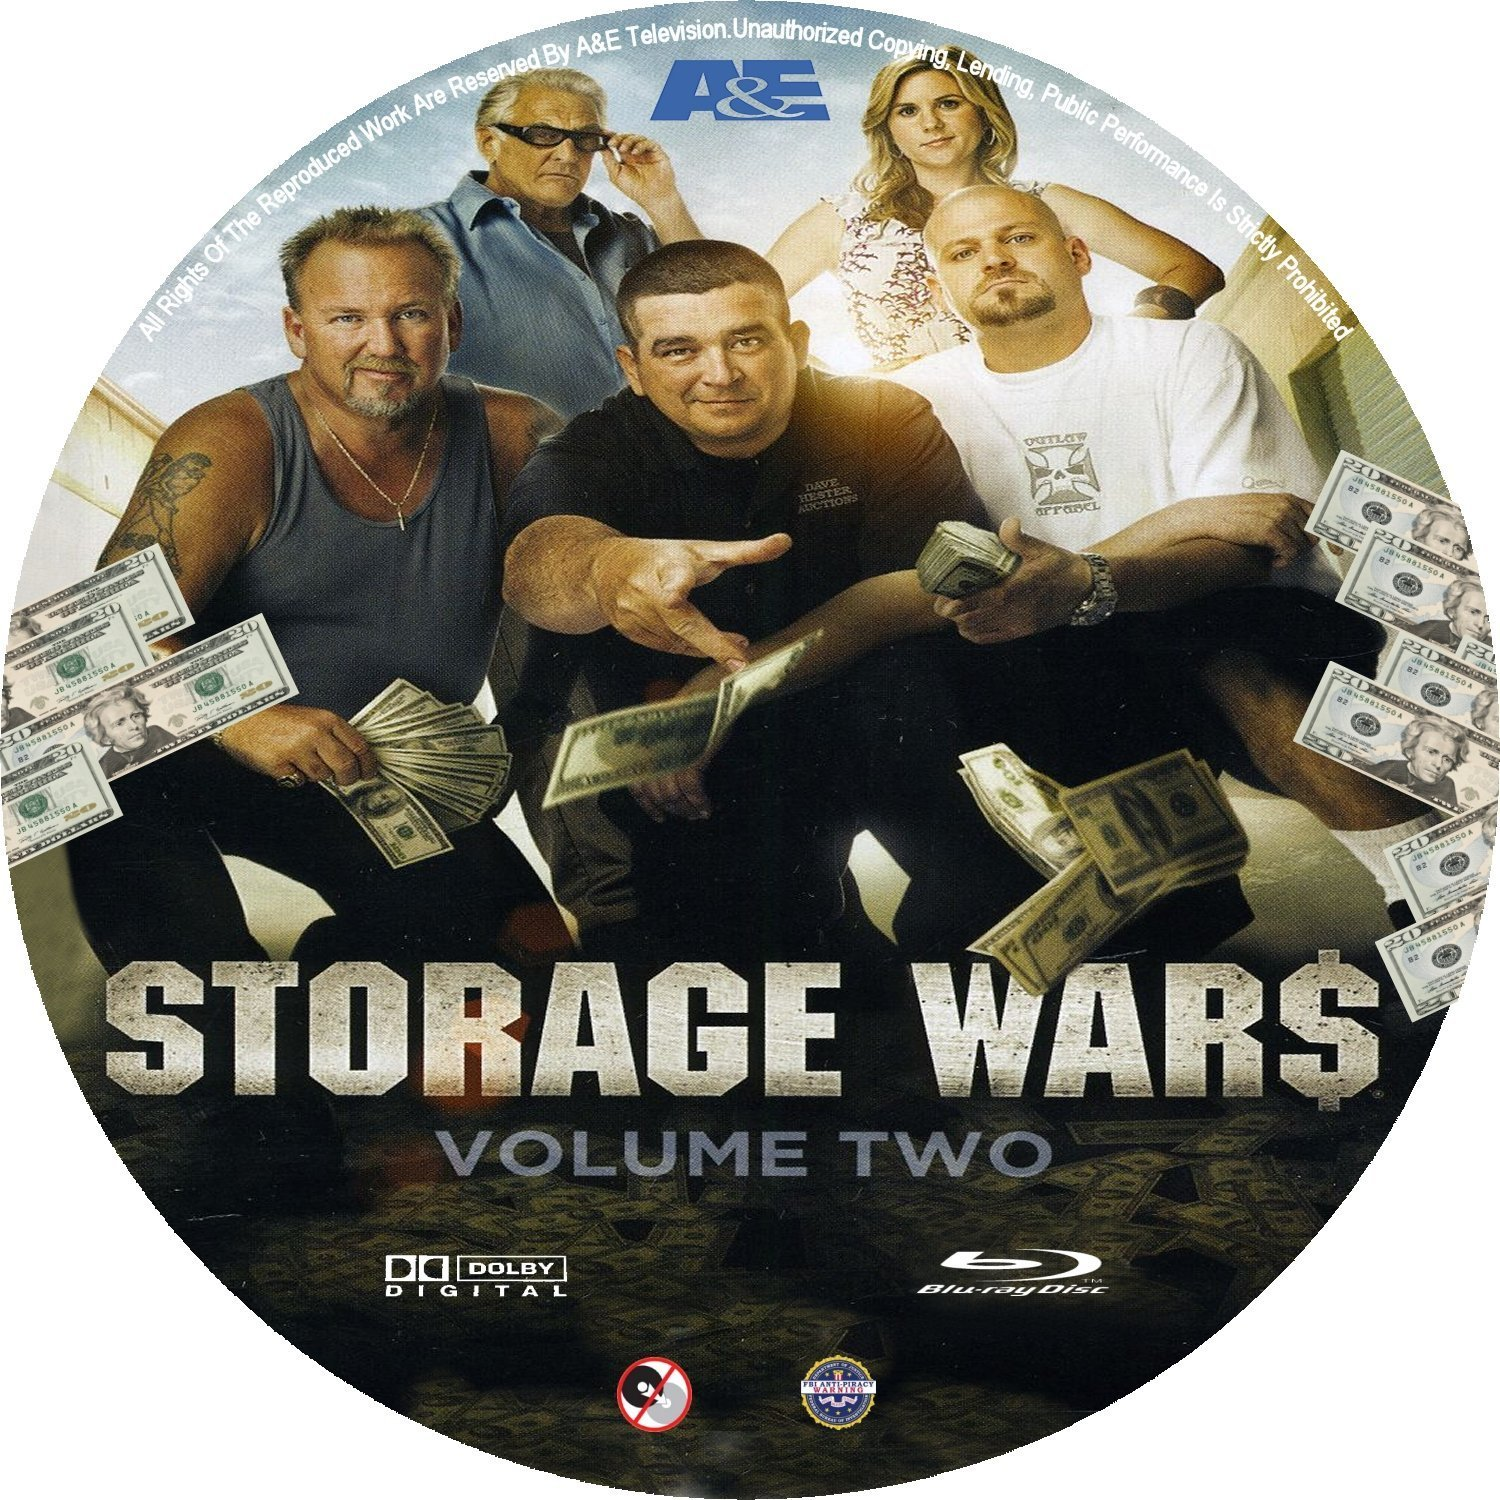 dvd cover Storage Wars Seasons 1-2-3 Custom dvd/blu-  sc 1 st  Dvd Covers and Labels & Storage Wars: Seasons 1-2-3 Custom dvd/blu-ray labels | Dvd Covers ...